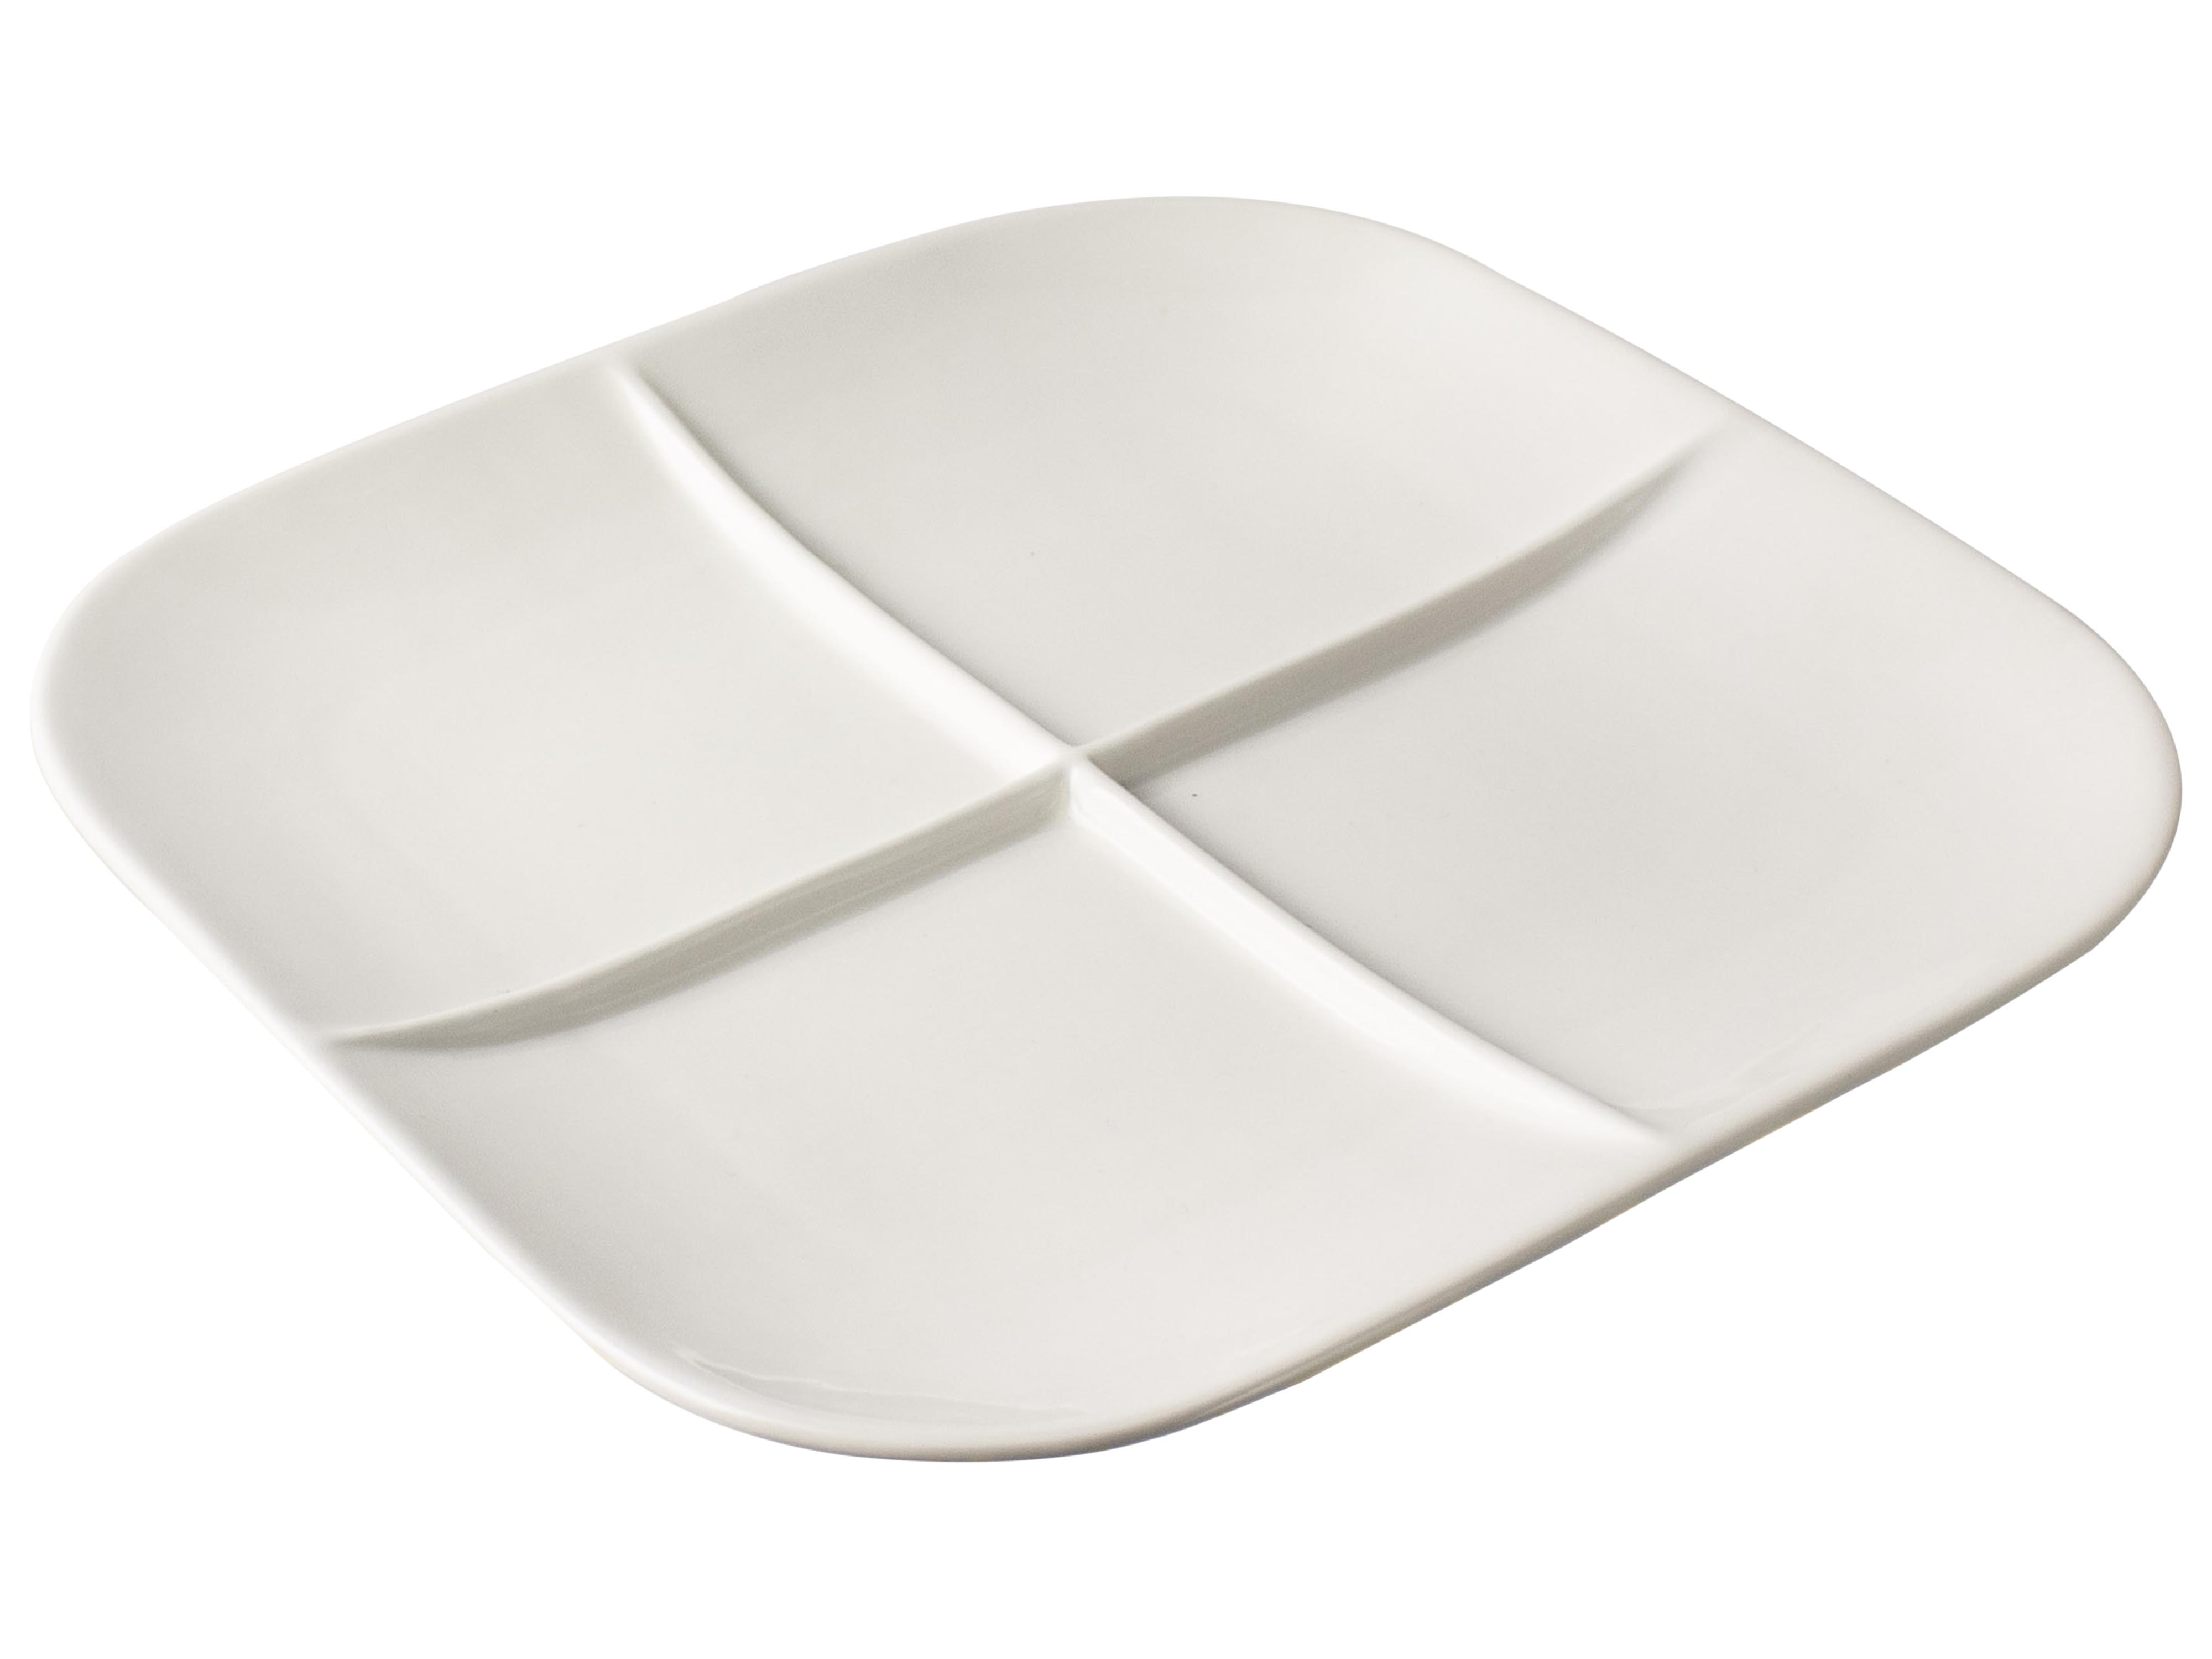 4 Compartment Plate Sparkle Gift